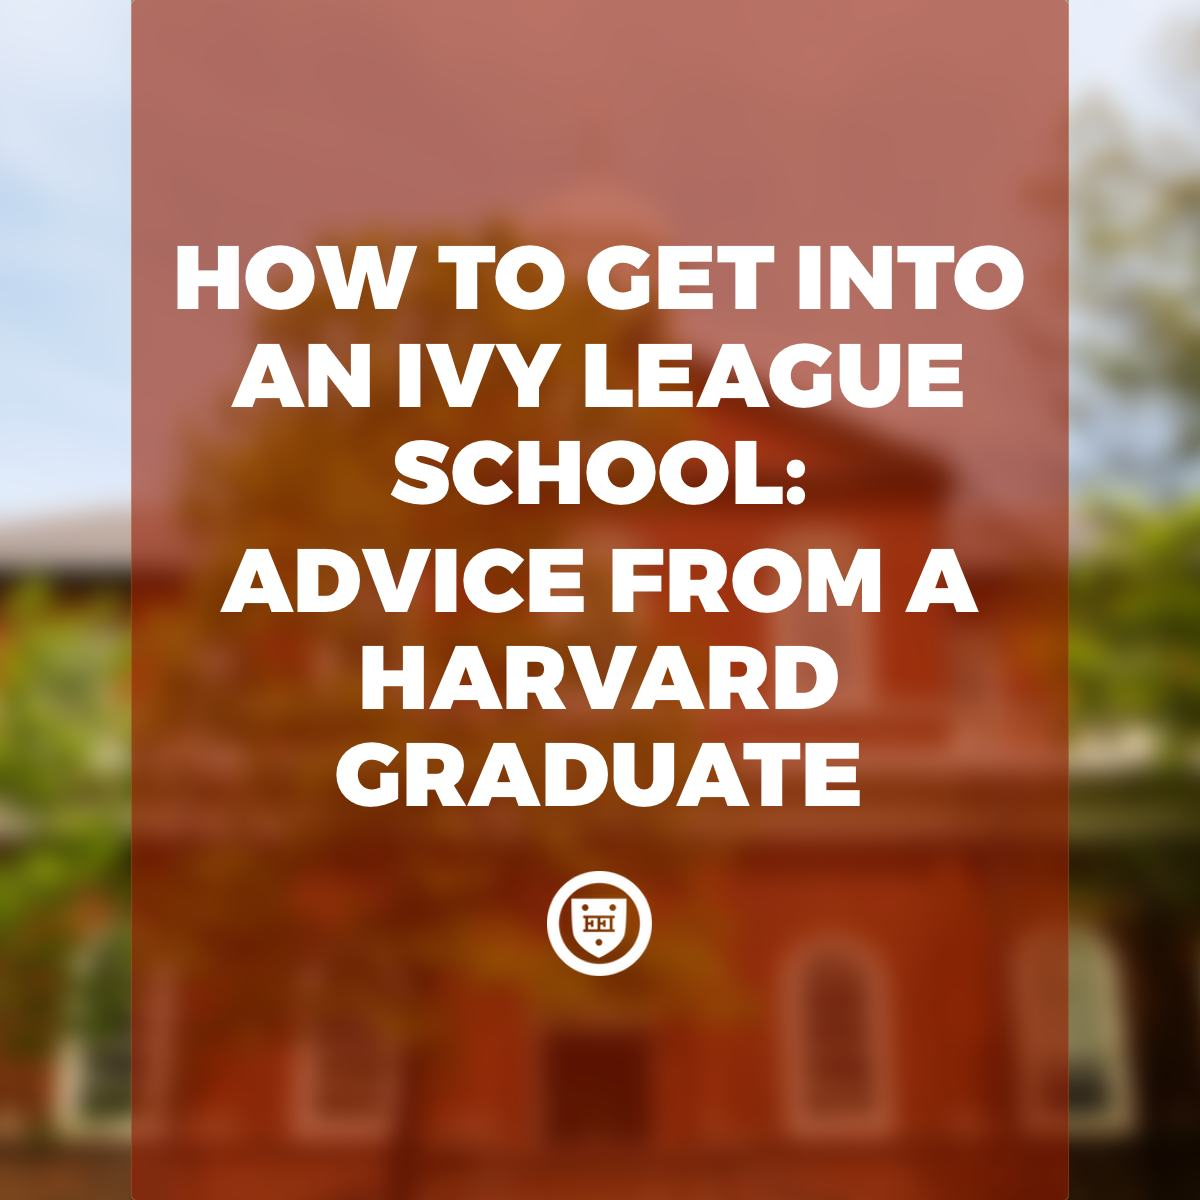 How to Get Into an Ivy League School: Advice from a Harvard Graduate